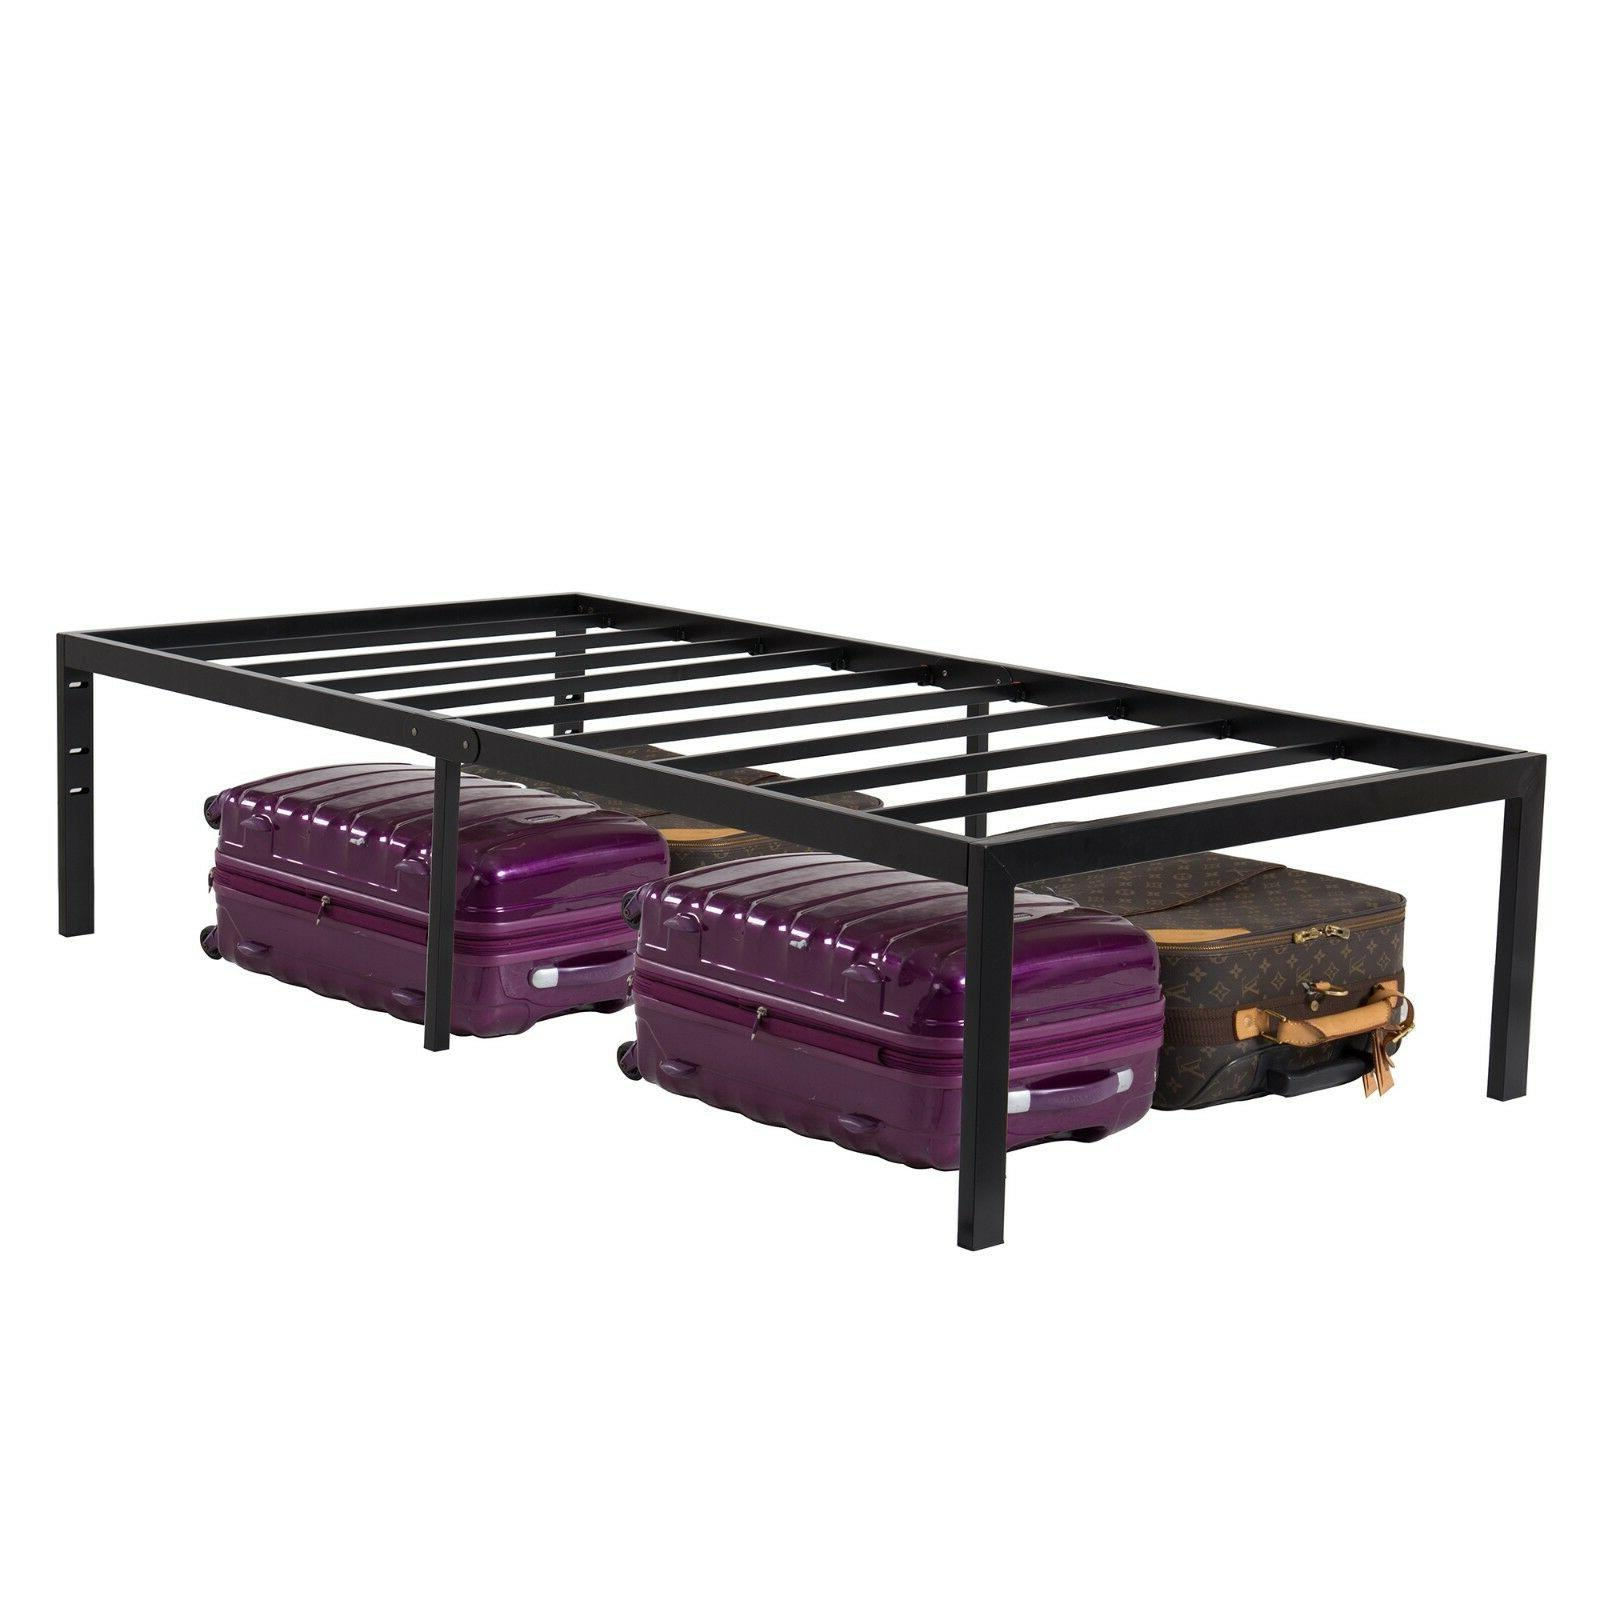 "18"" Foundation Bed Frame Twin Bedroom Included"